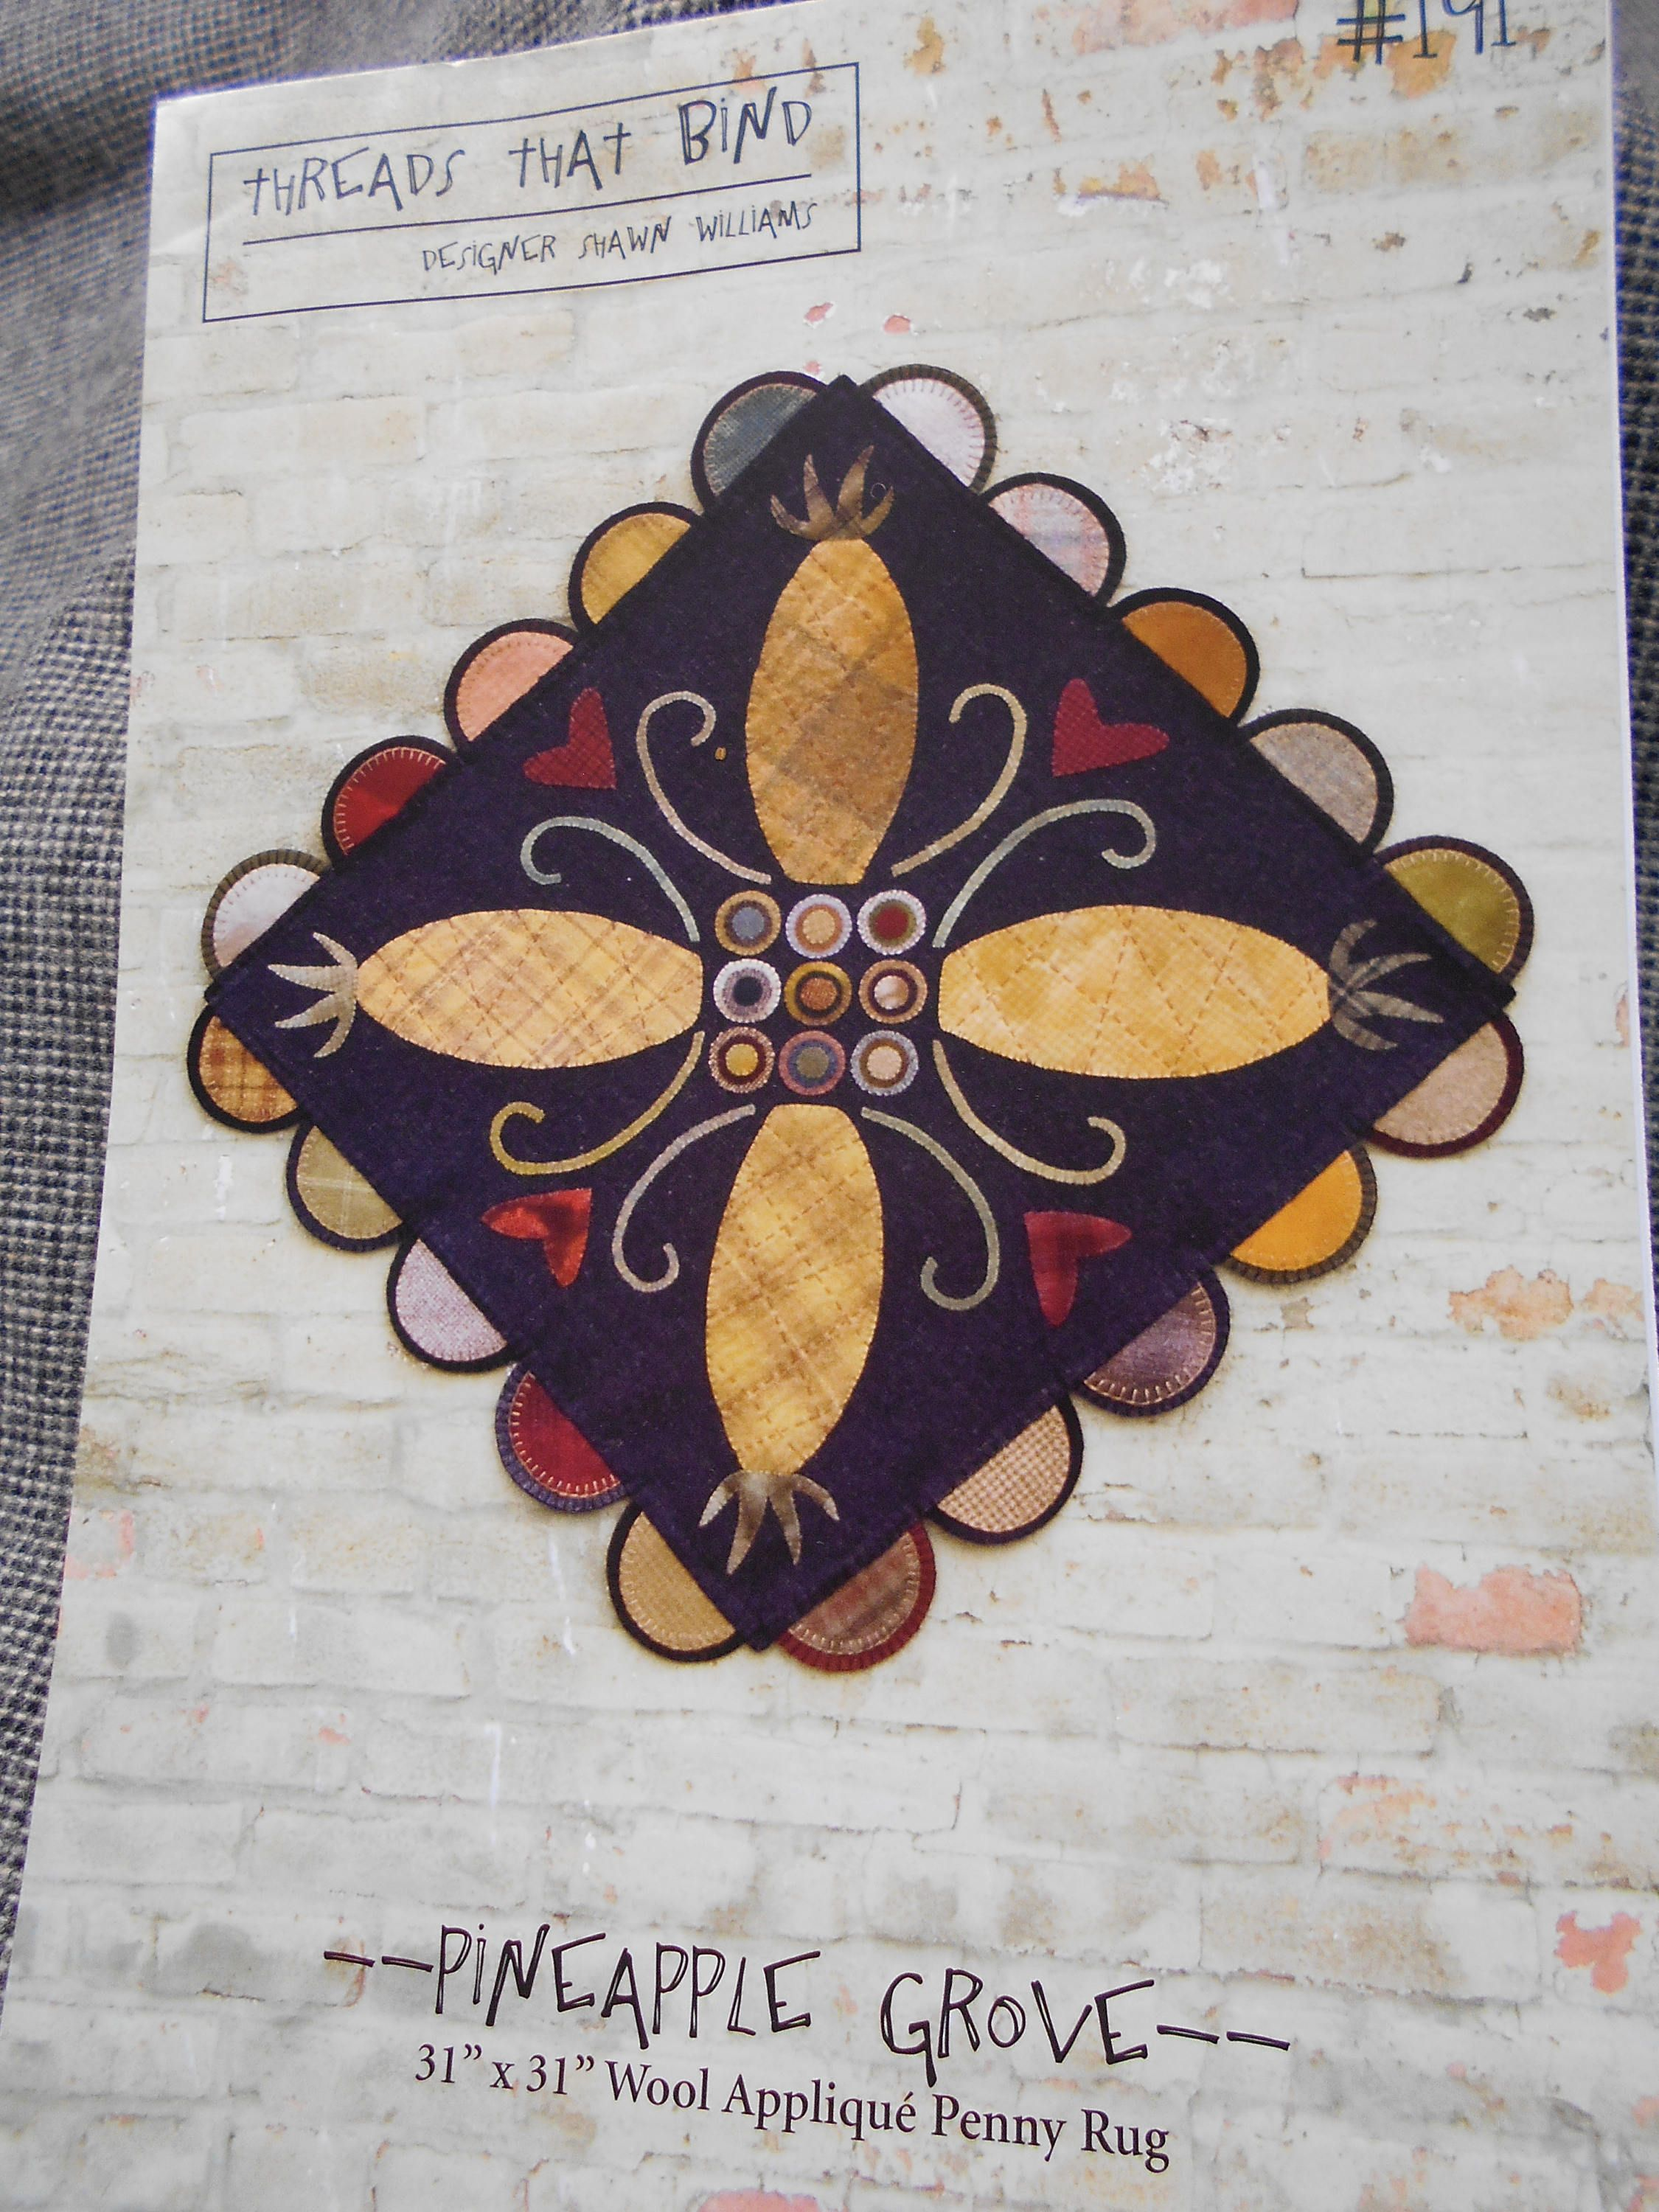 Pinele Grove Wool Lique Penny Rug Pattern By Threads That Bind Mylilcraftroom On Etsy